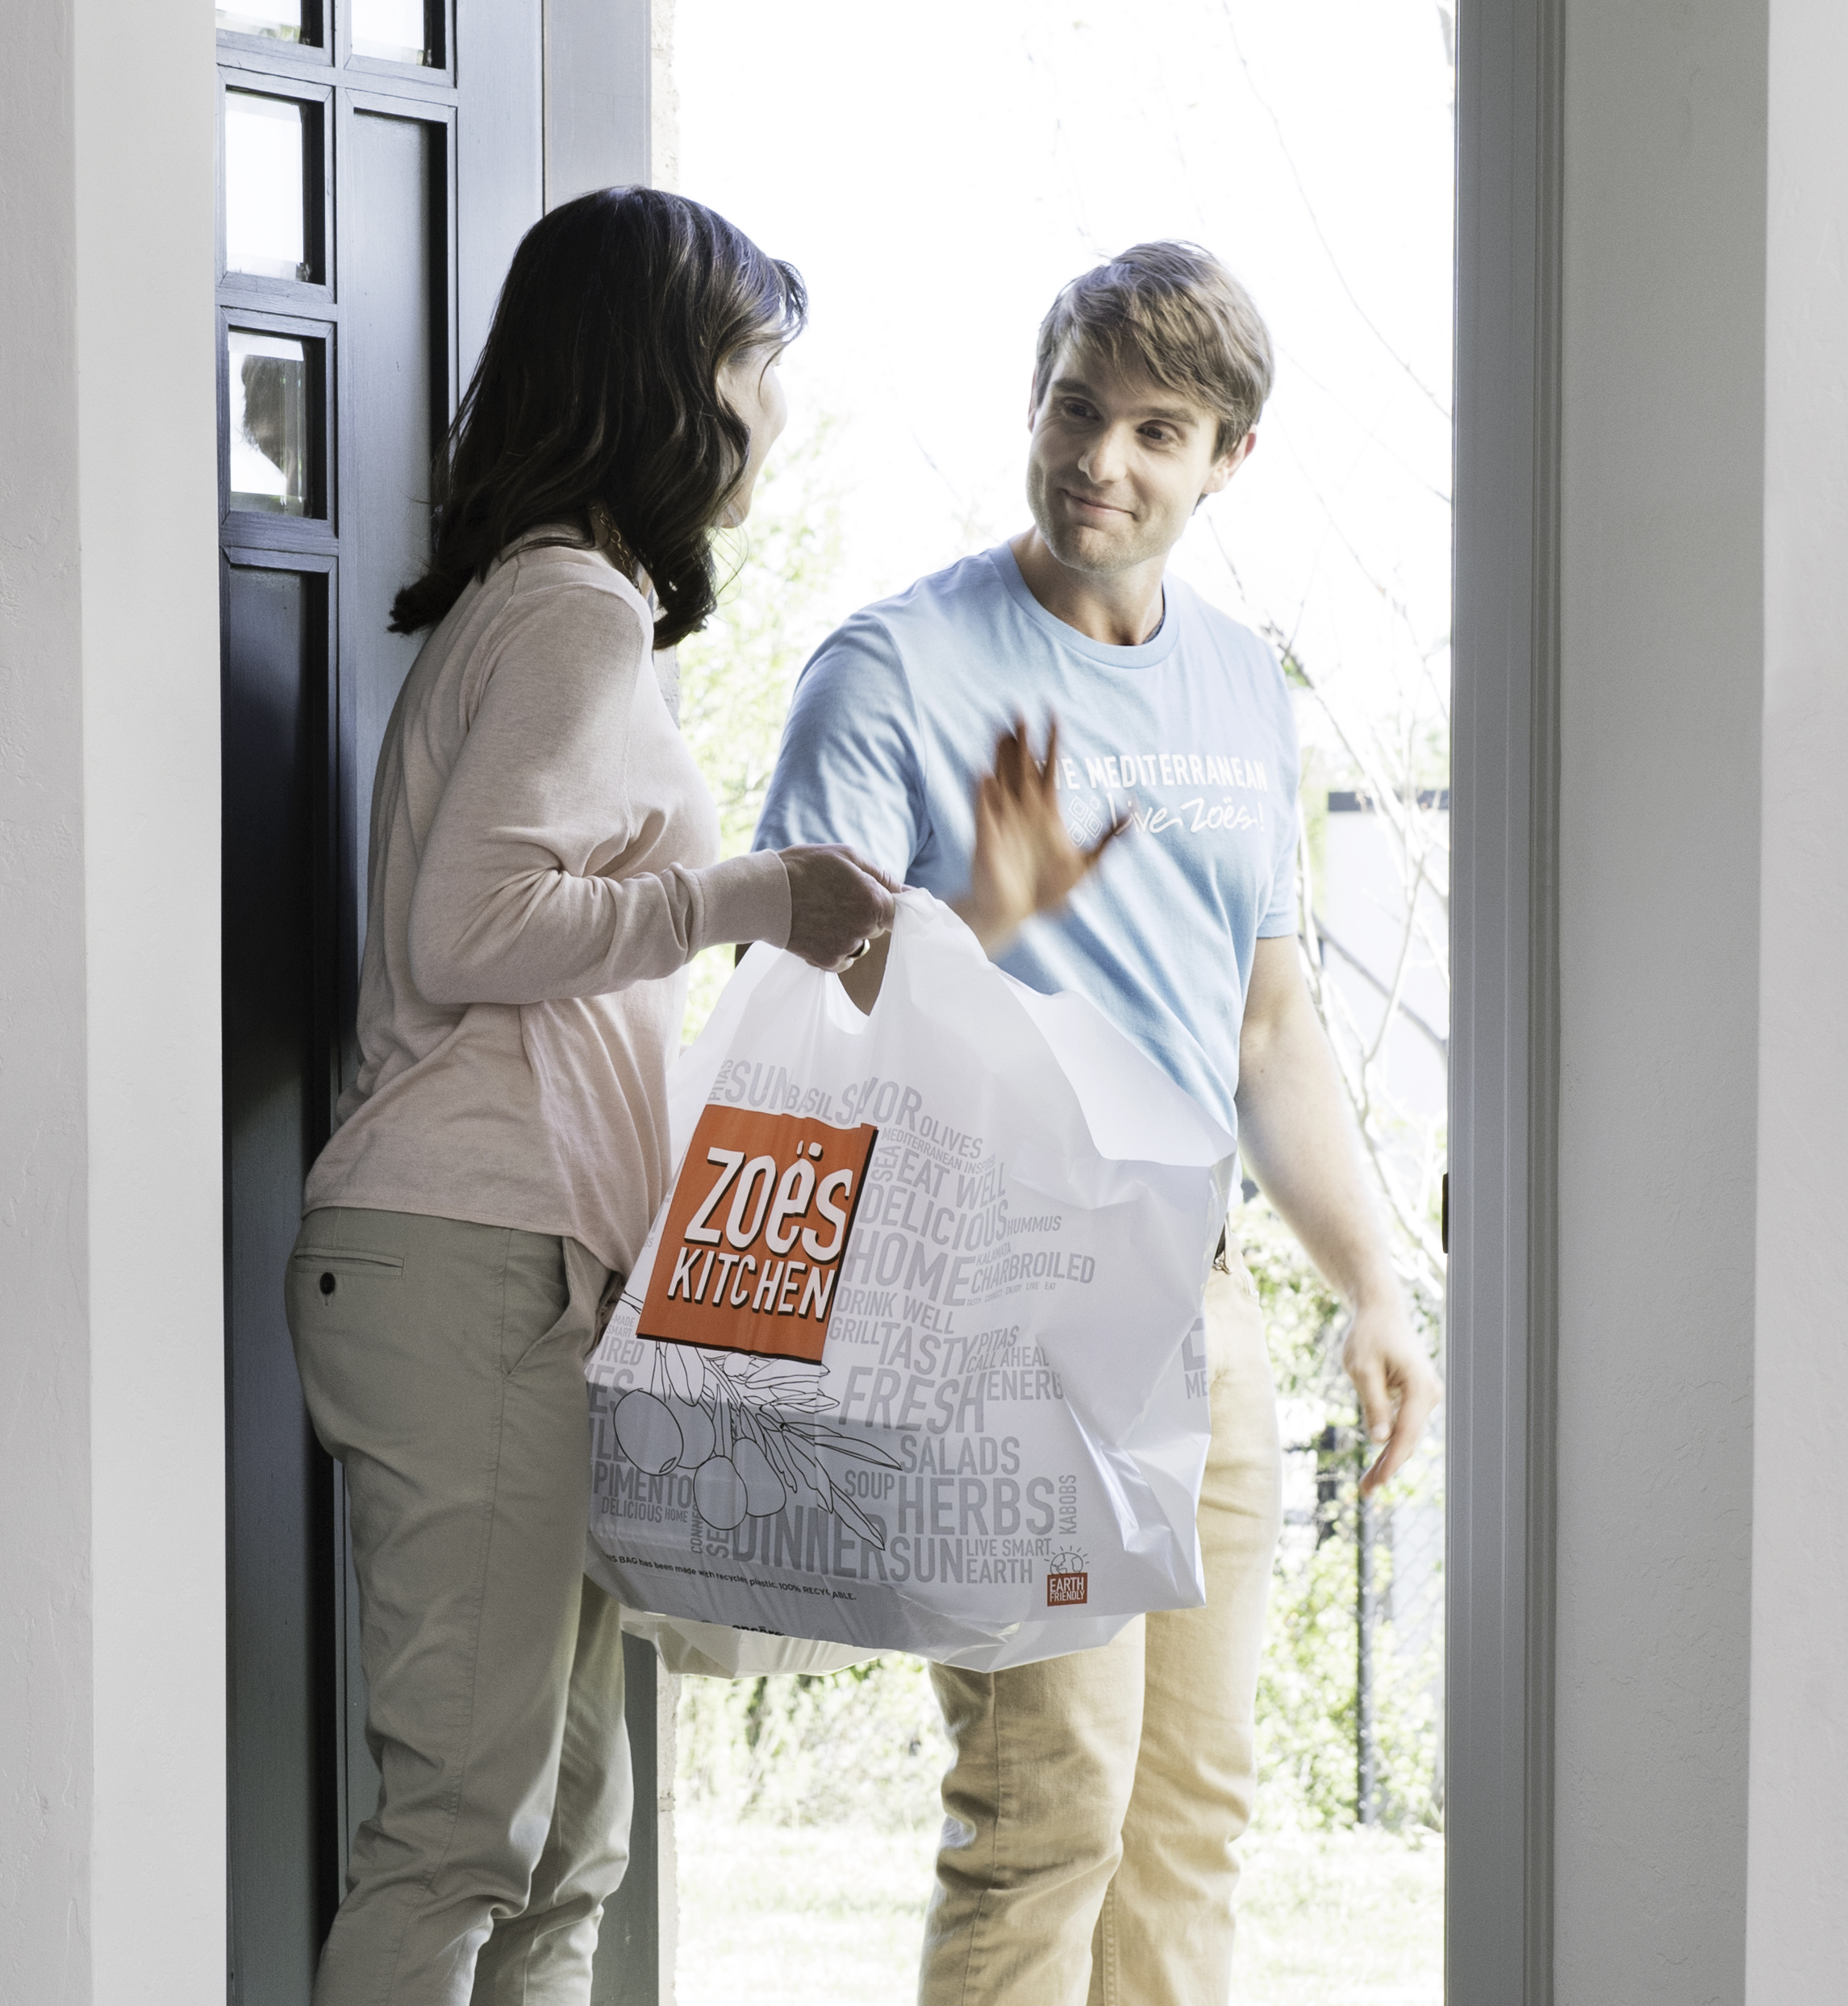 Zoës Kitchen Launches Direct Delivery Service with Free